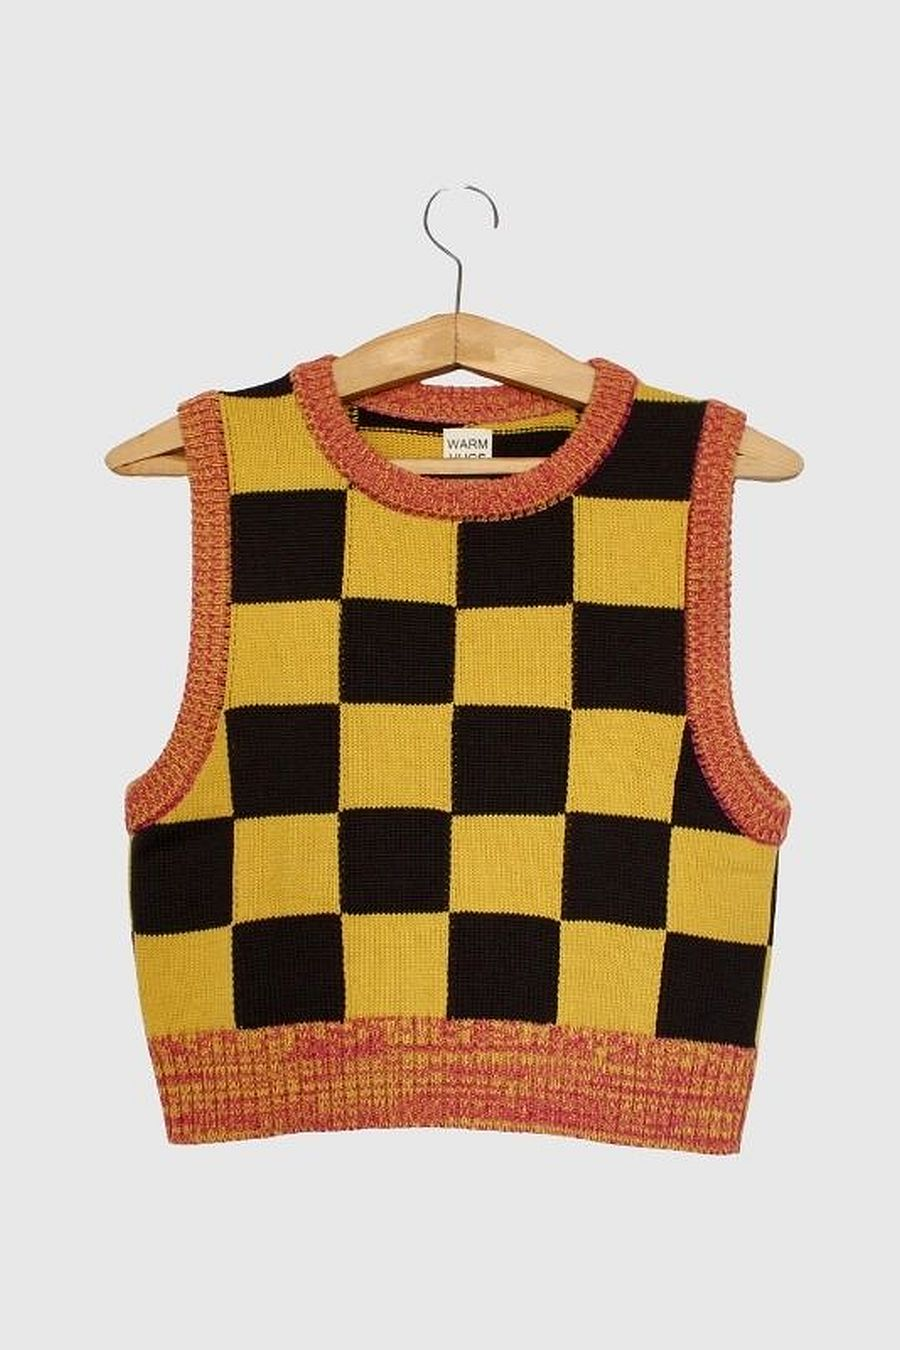 Warm Hugs Only Checkmate Vest - Yellow/Brown